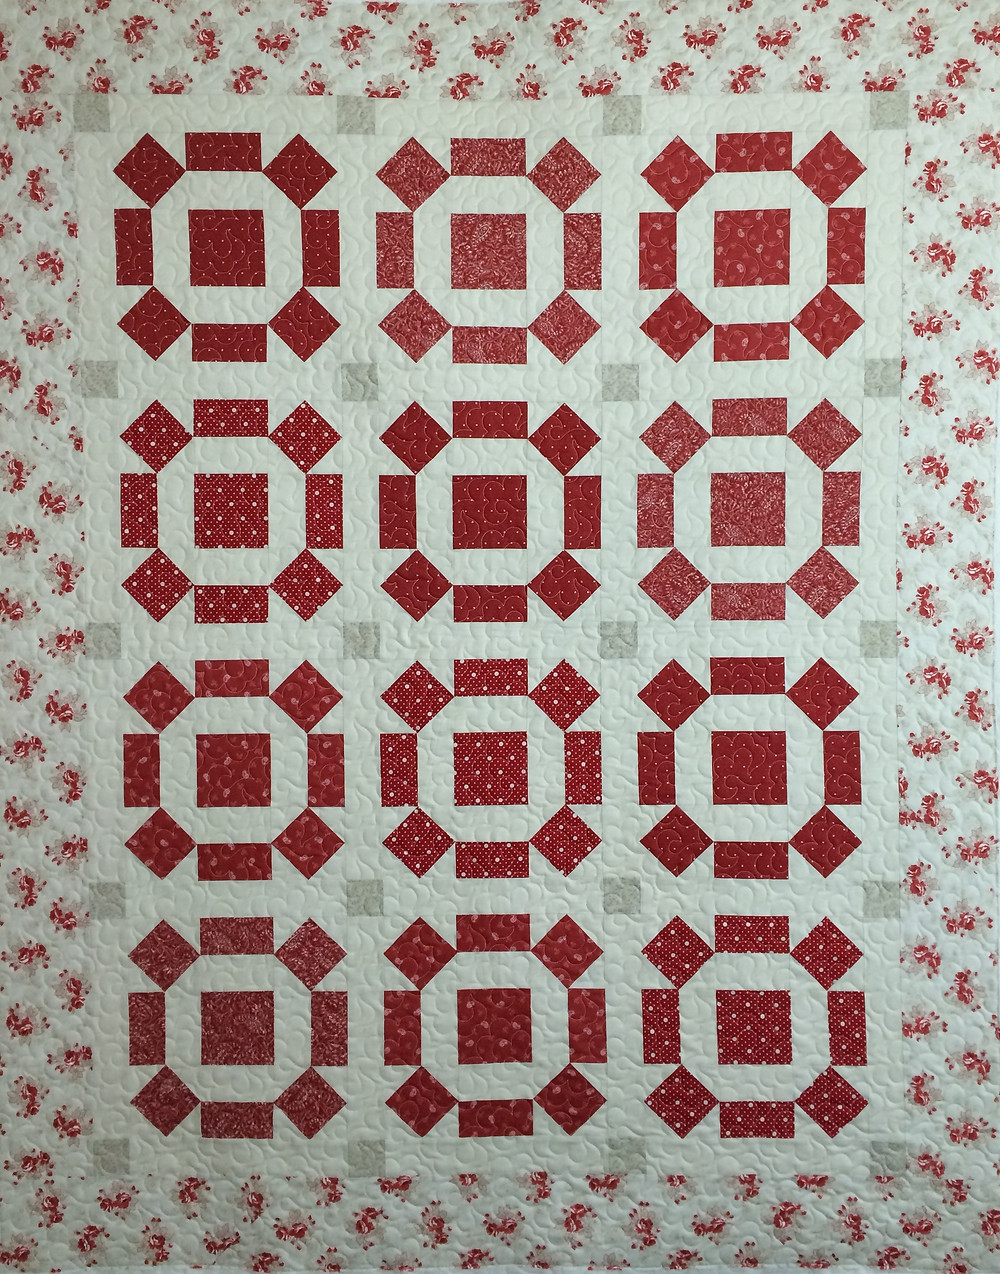 Red and Cream quilt by Cheryl Cohorn